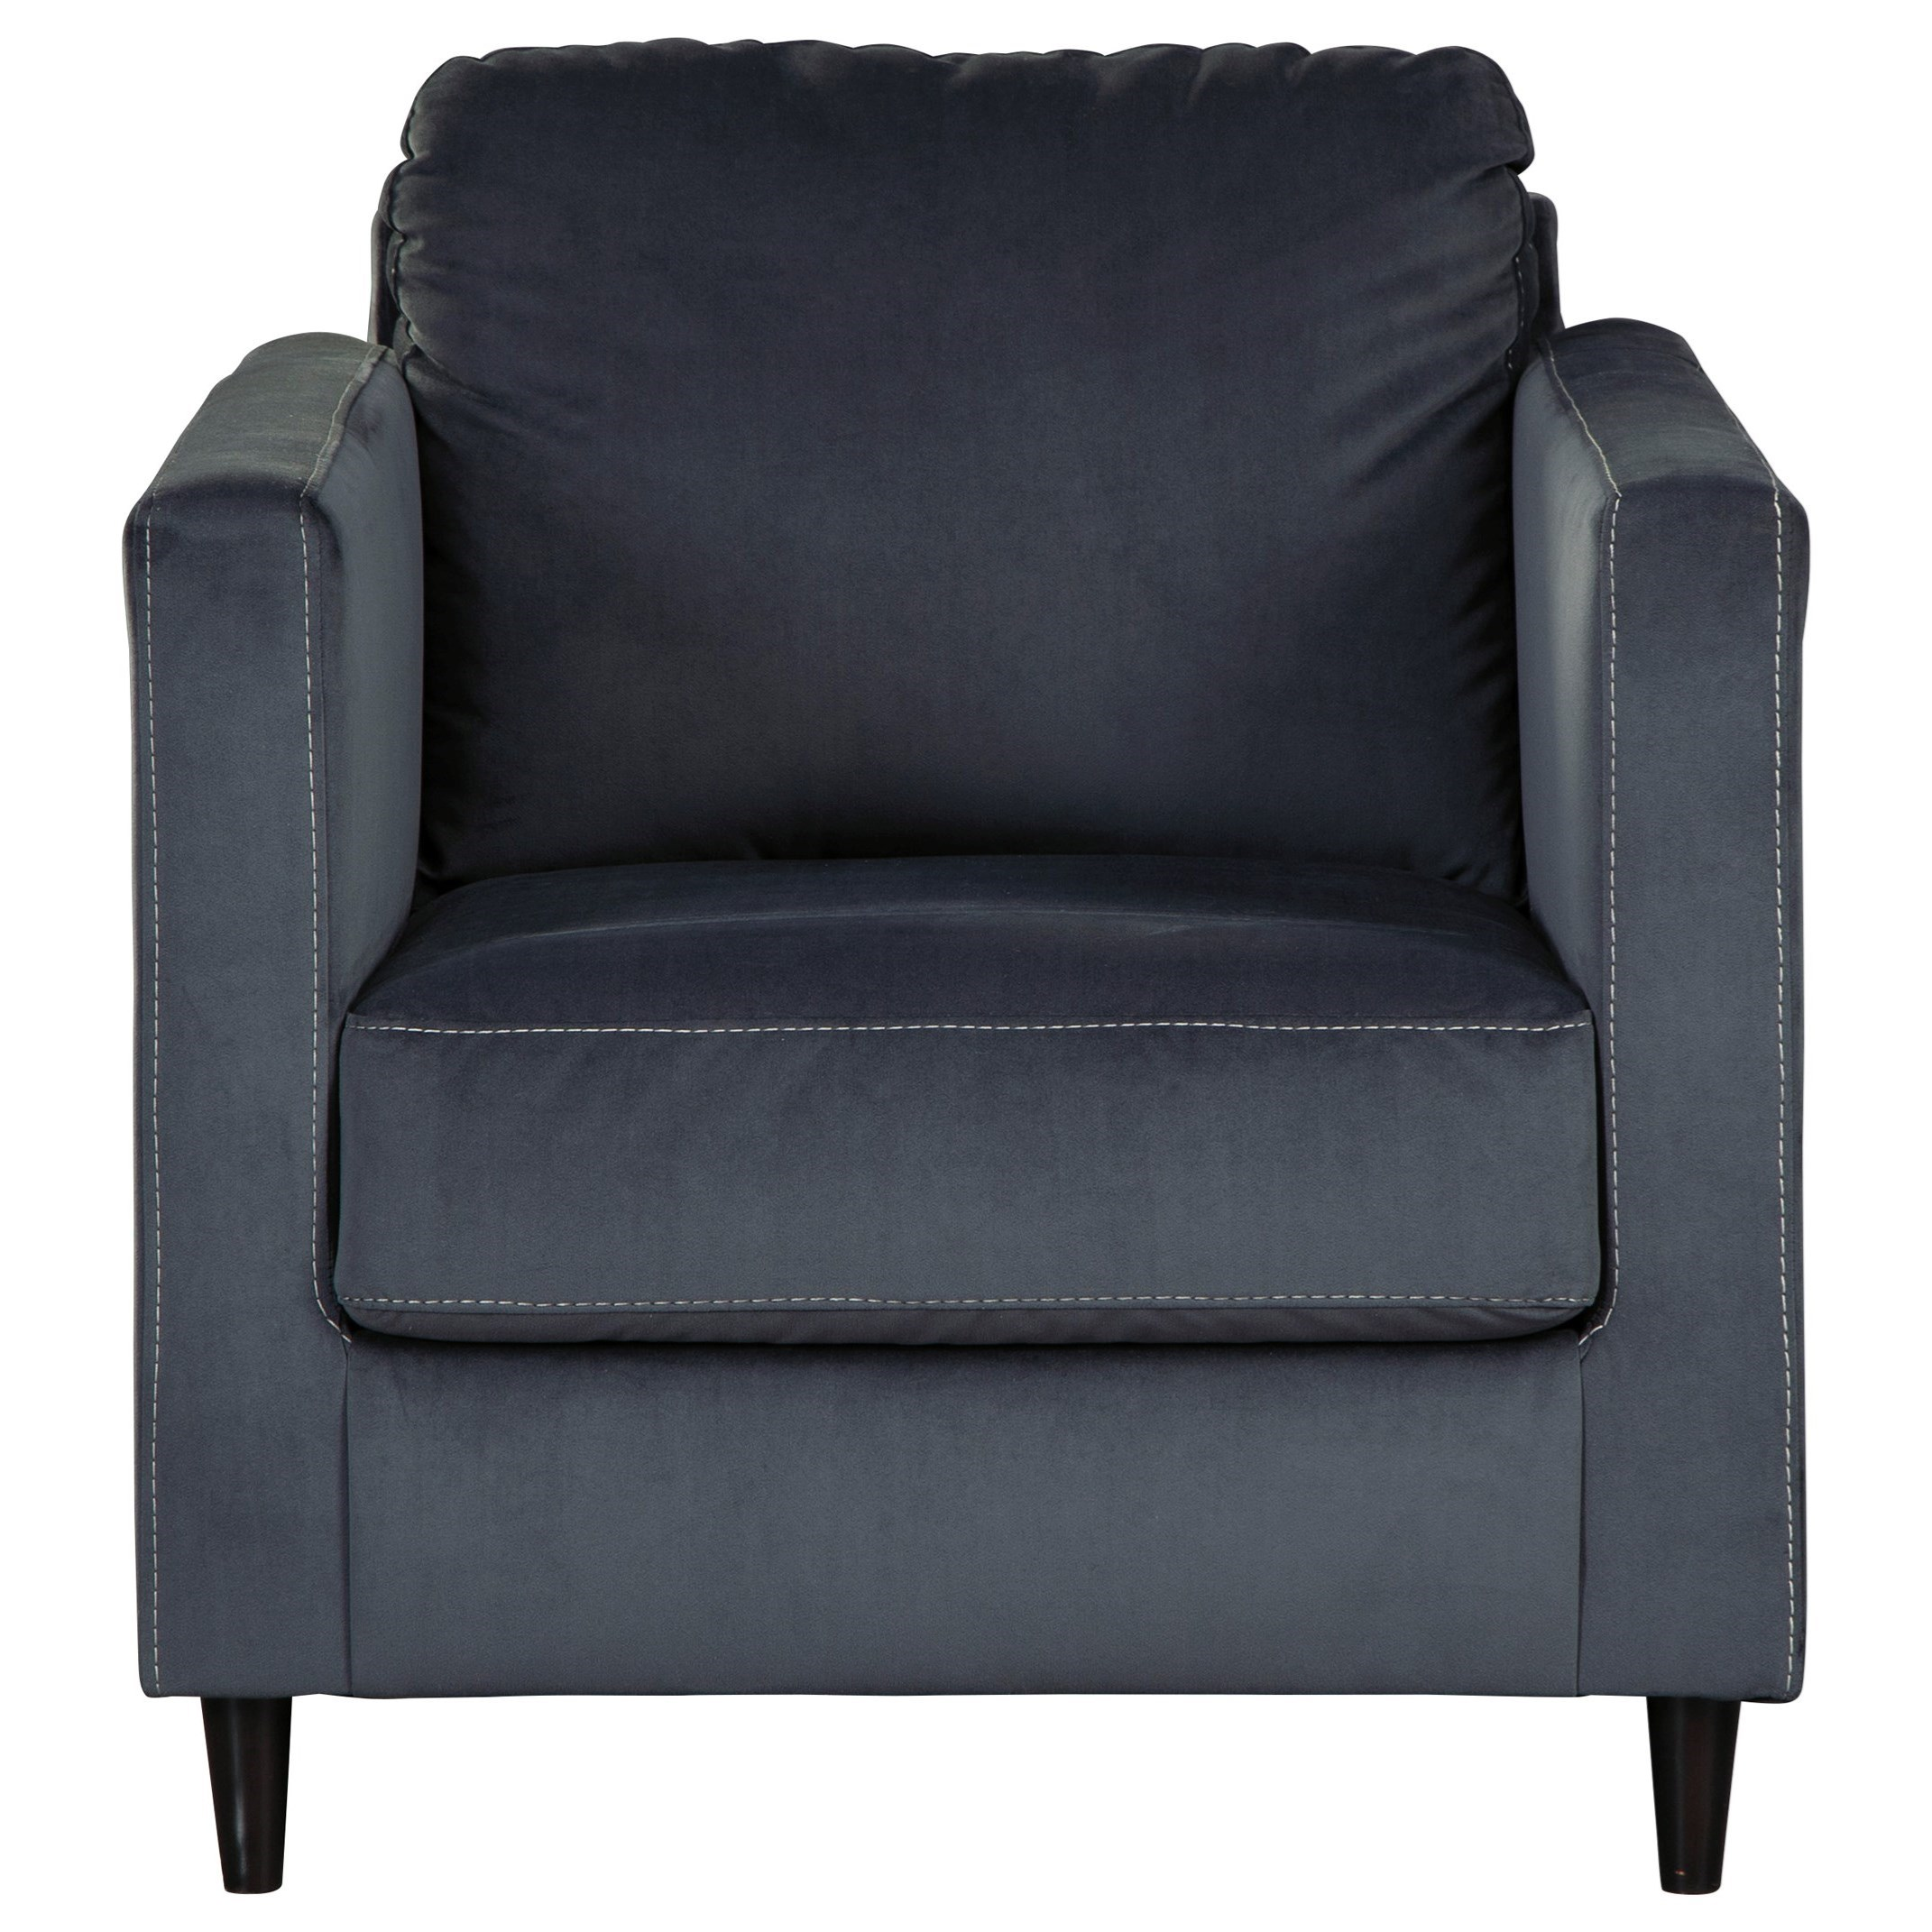 Kennewick Chair by Ashley (Signature Design) at Johnny Janosik